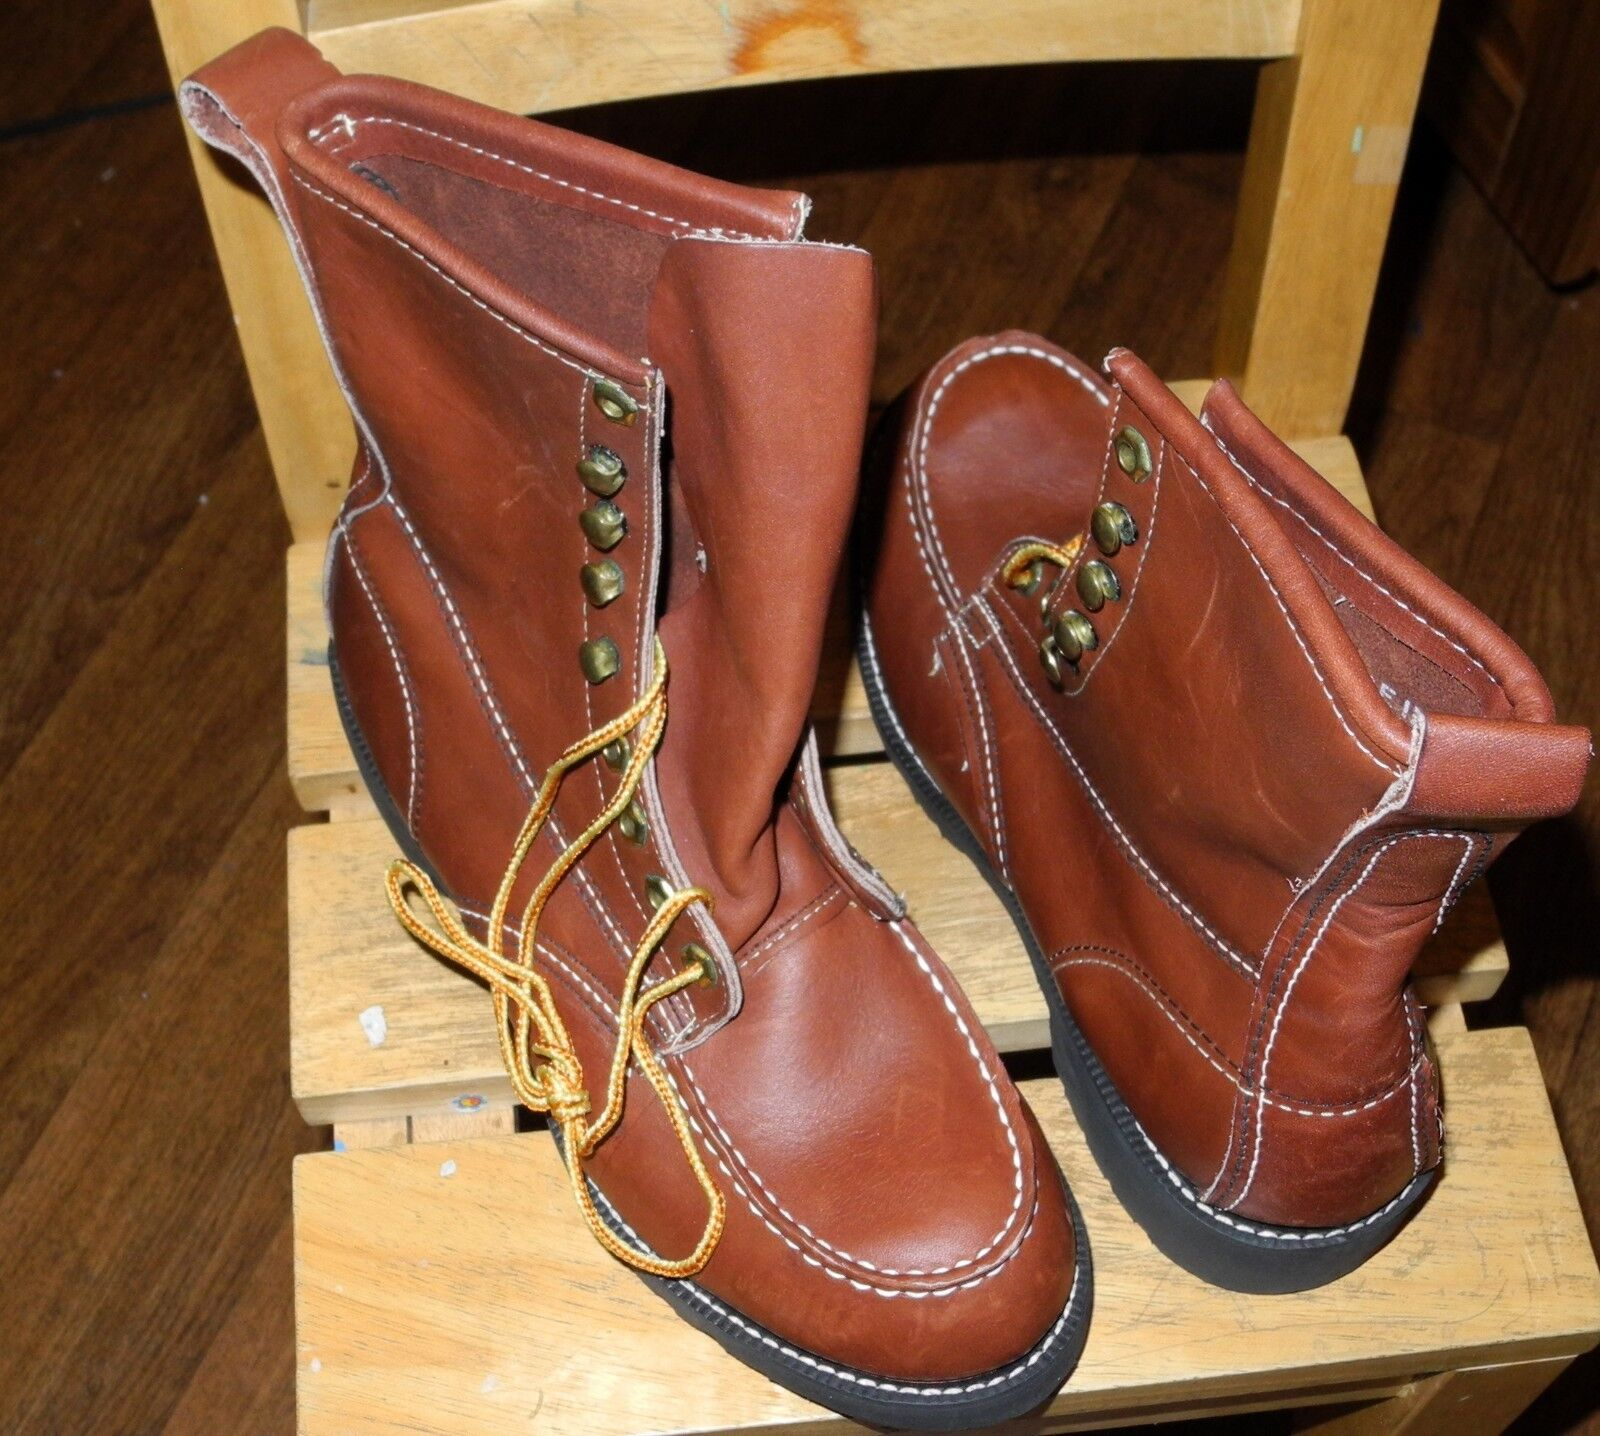 NEW Georgia Giant Boot 25186 Oil Resistant Sole Full Work Brown Boot Sz 6.5R